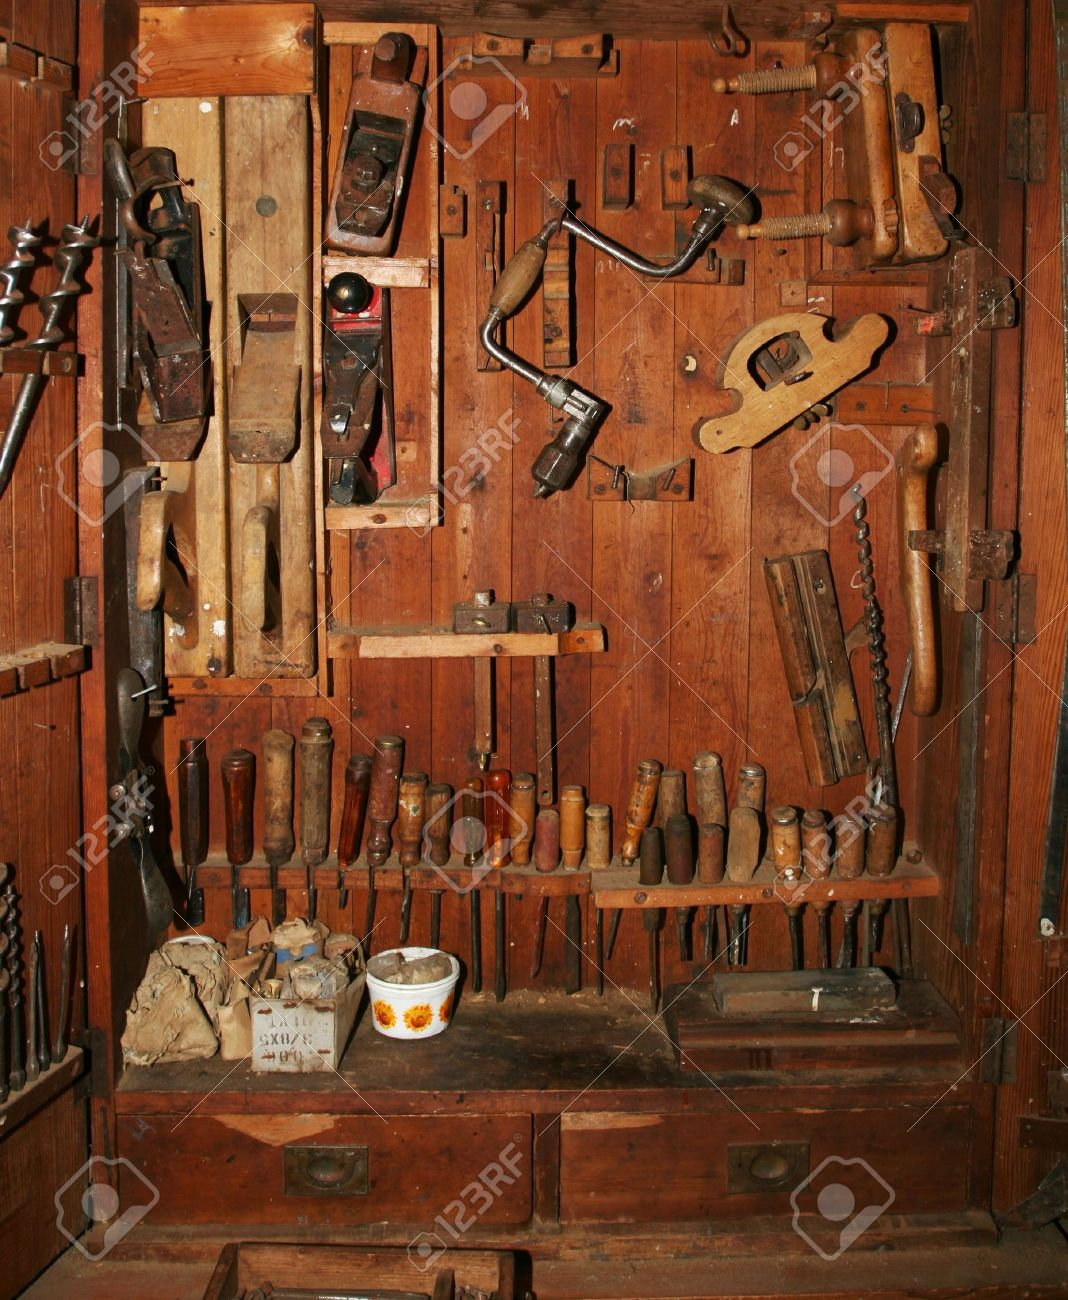 Very Old And Worn Woodworking Tools In Worn Down Cabinet Stock Photo